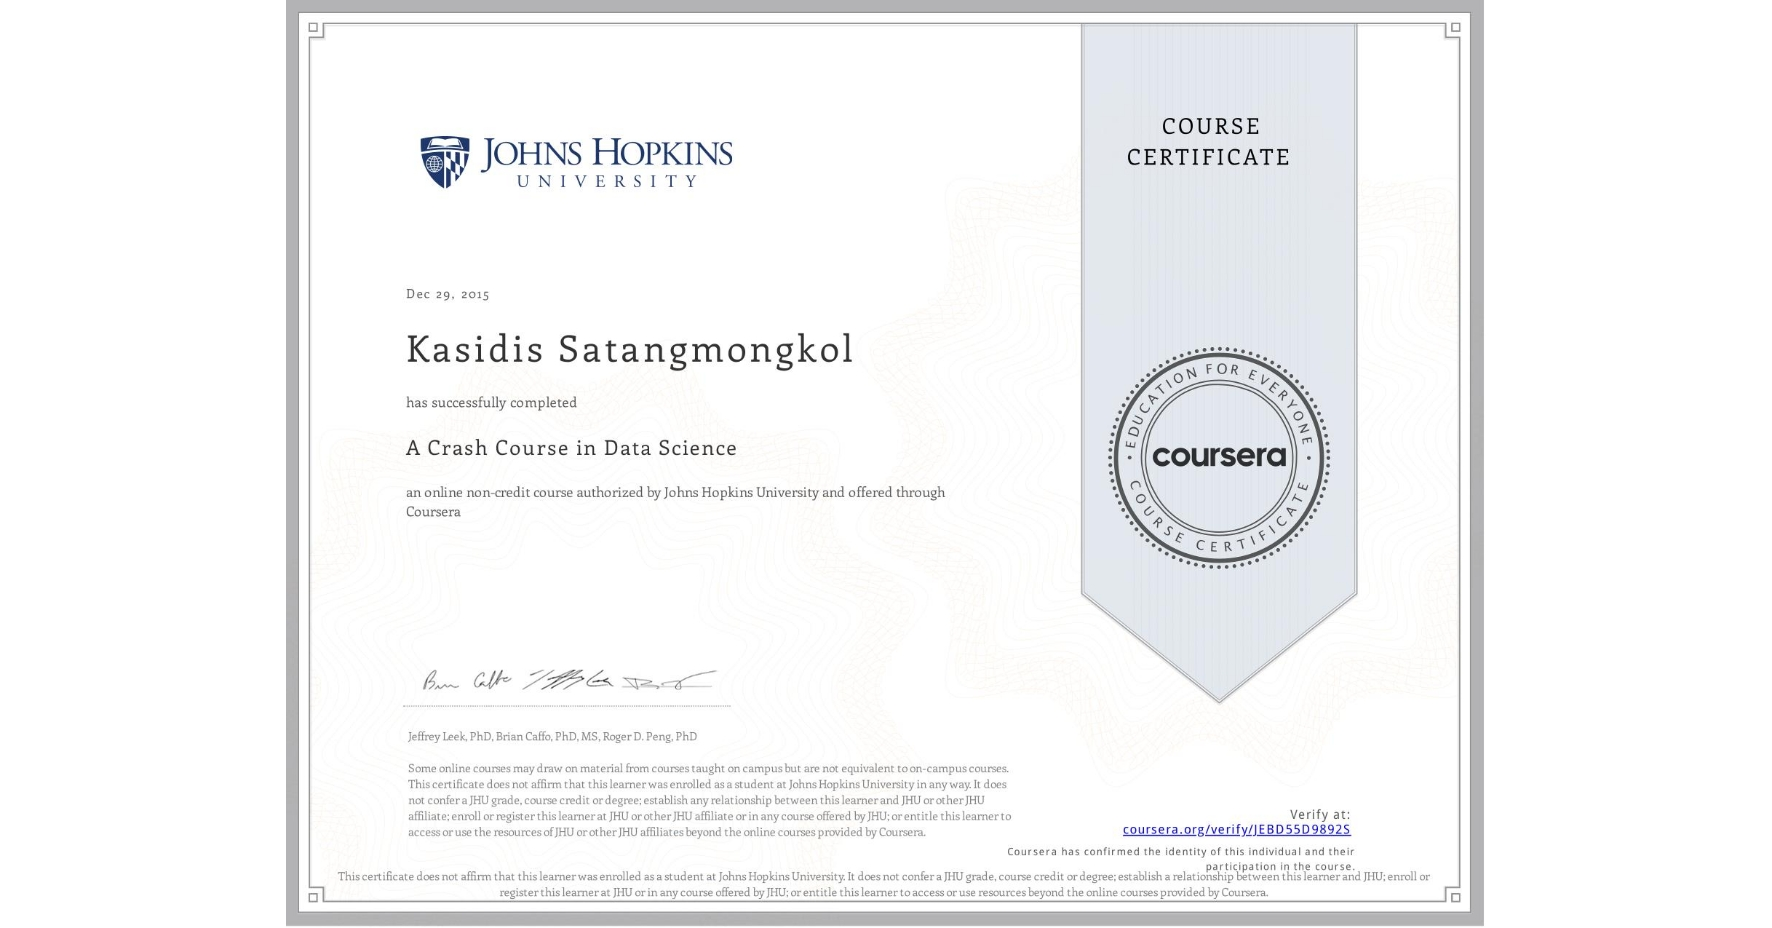 View certificate for KASIDIS SATANGMONGKOL, A Crash Course in Data Science, an online non-credit course authorized by Johns Hopkins University and offered through Coursera